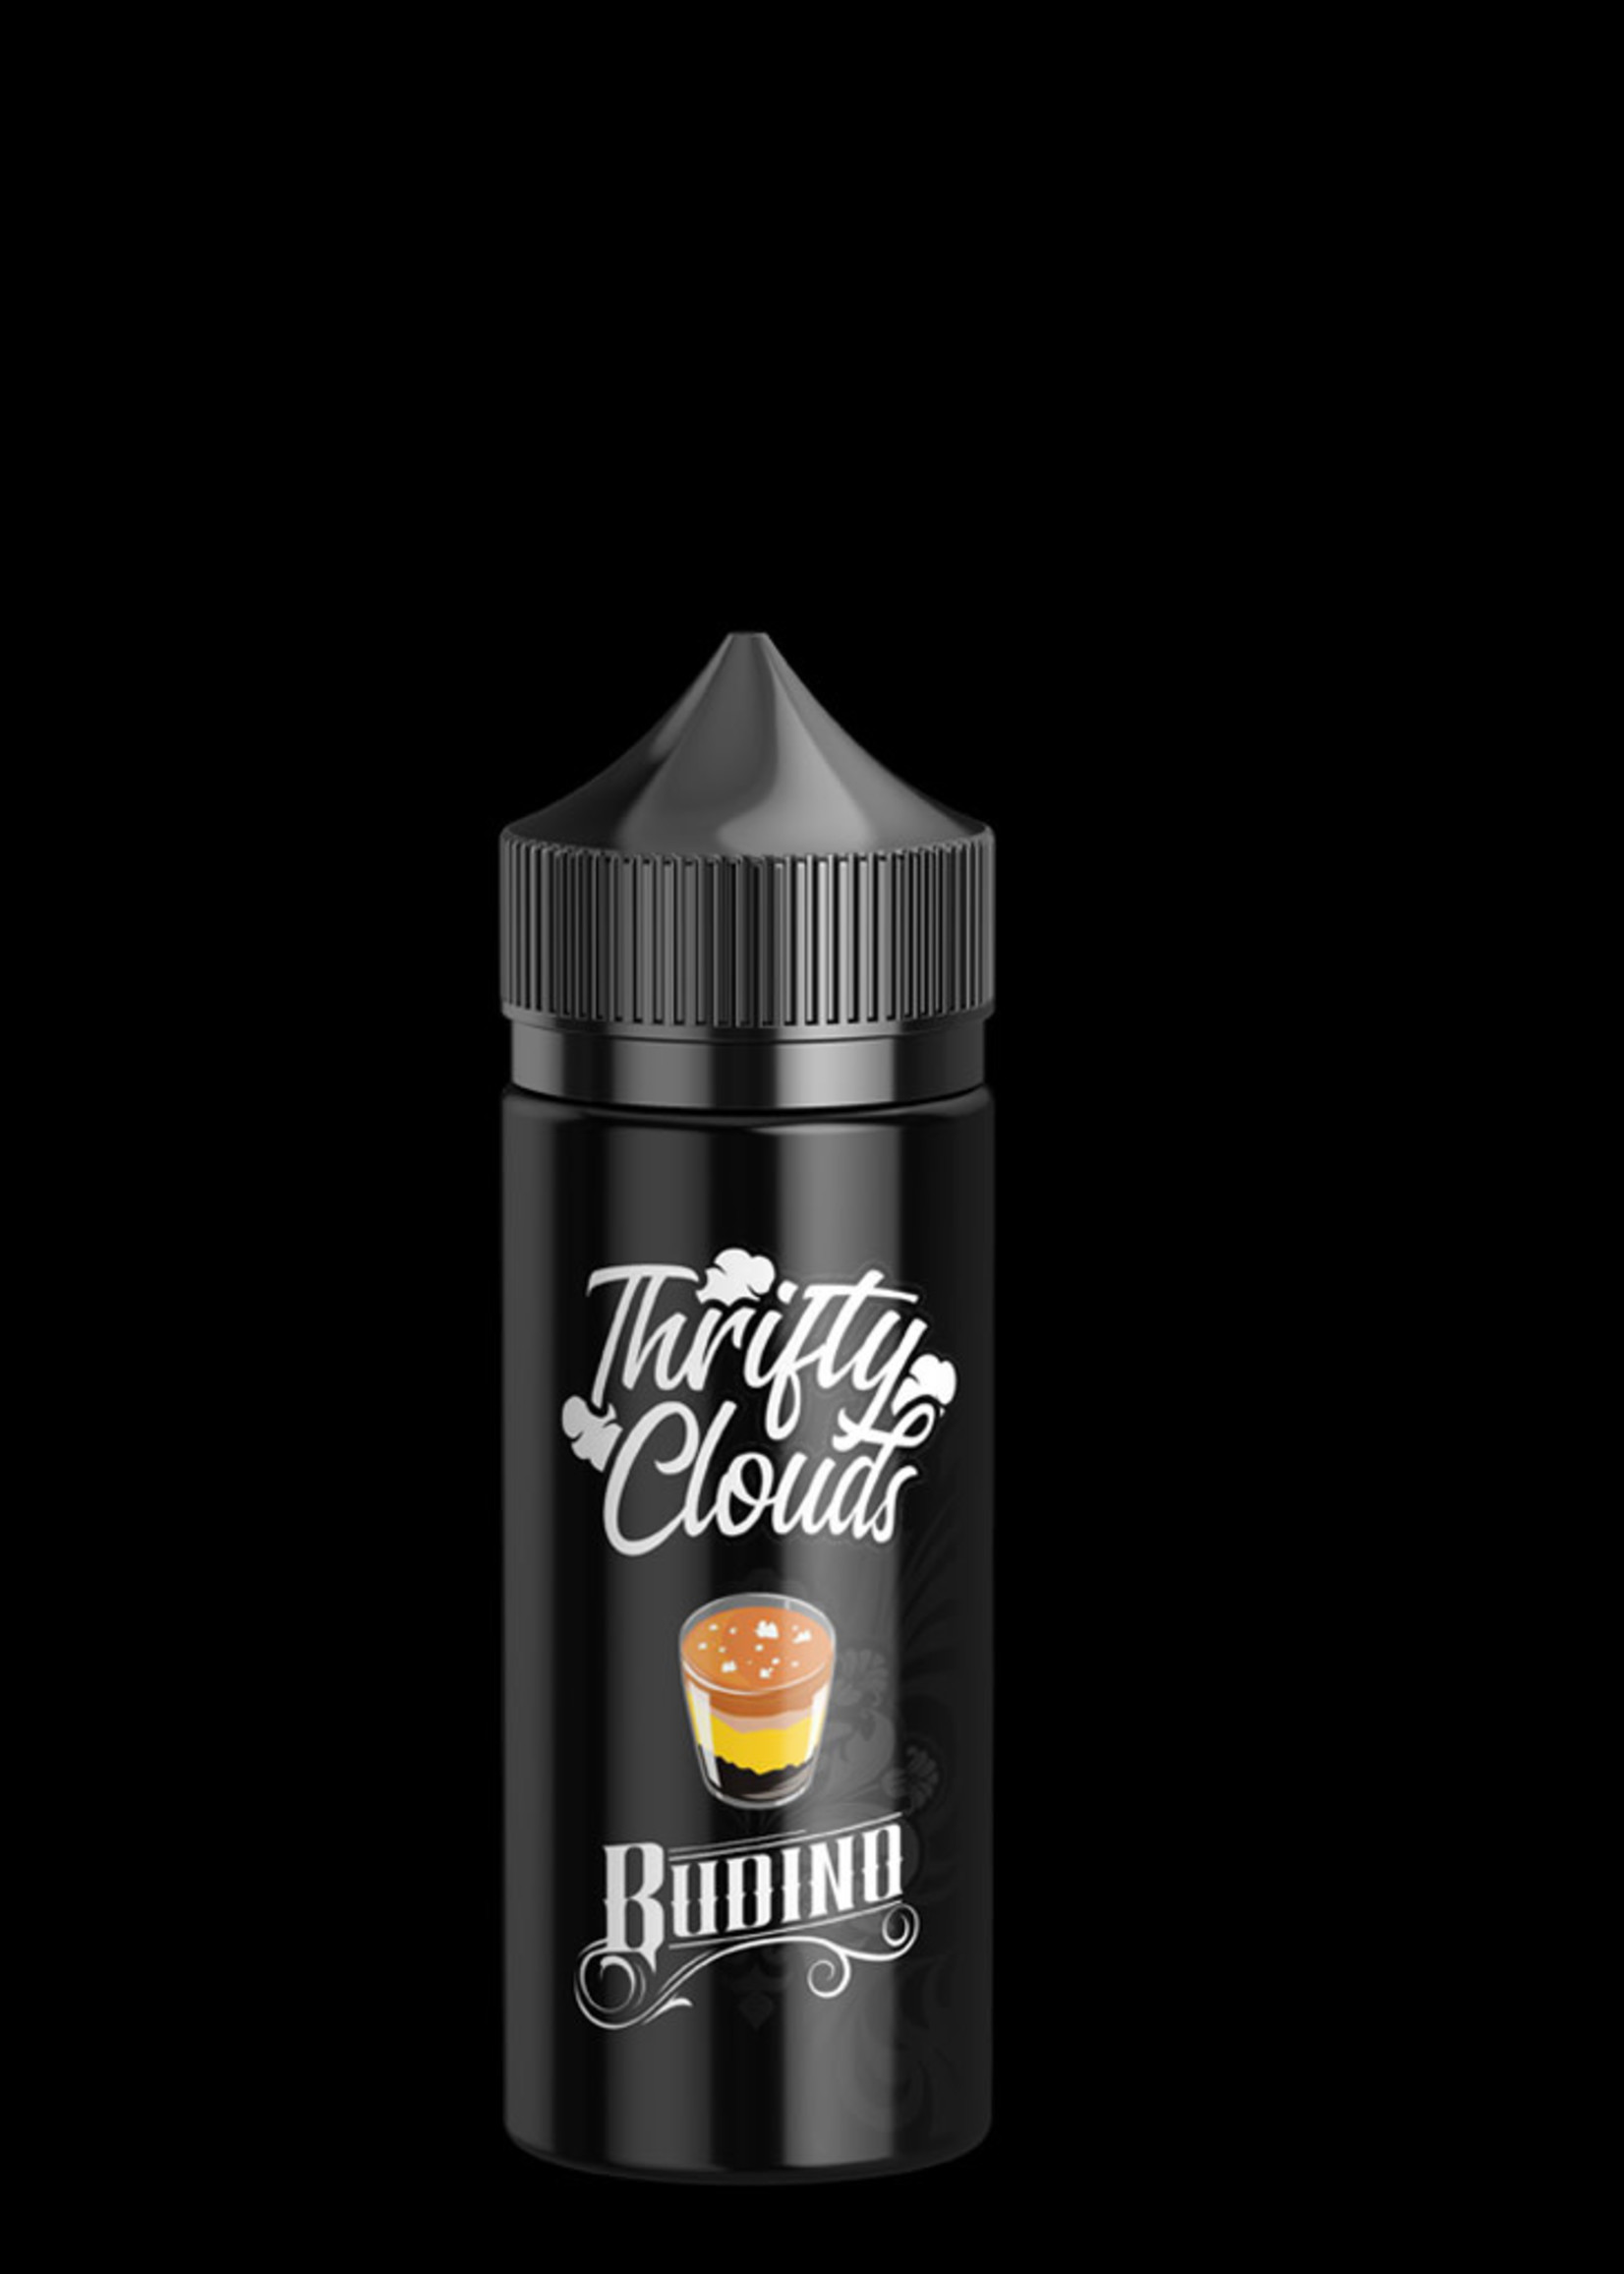 Thrifty clouds Vape flavour - Budino 100ml- 3mg